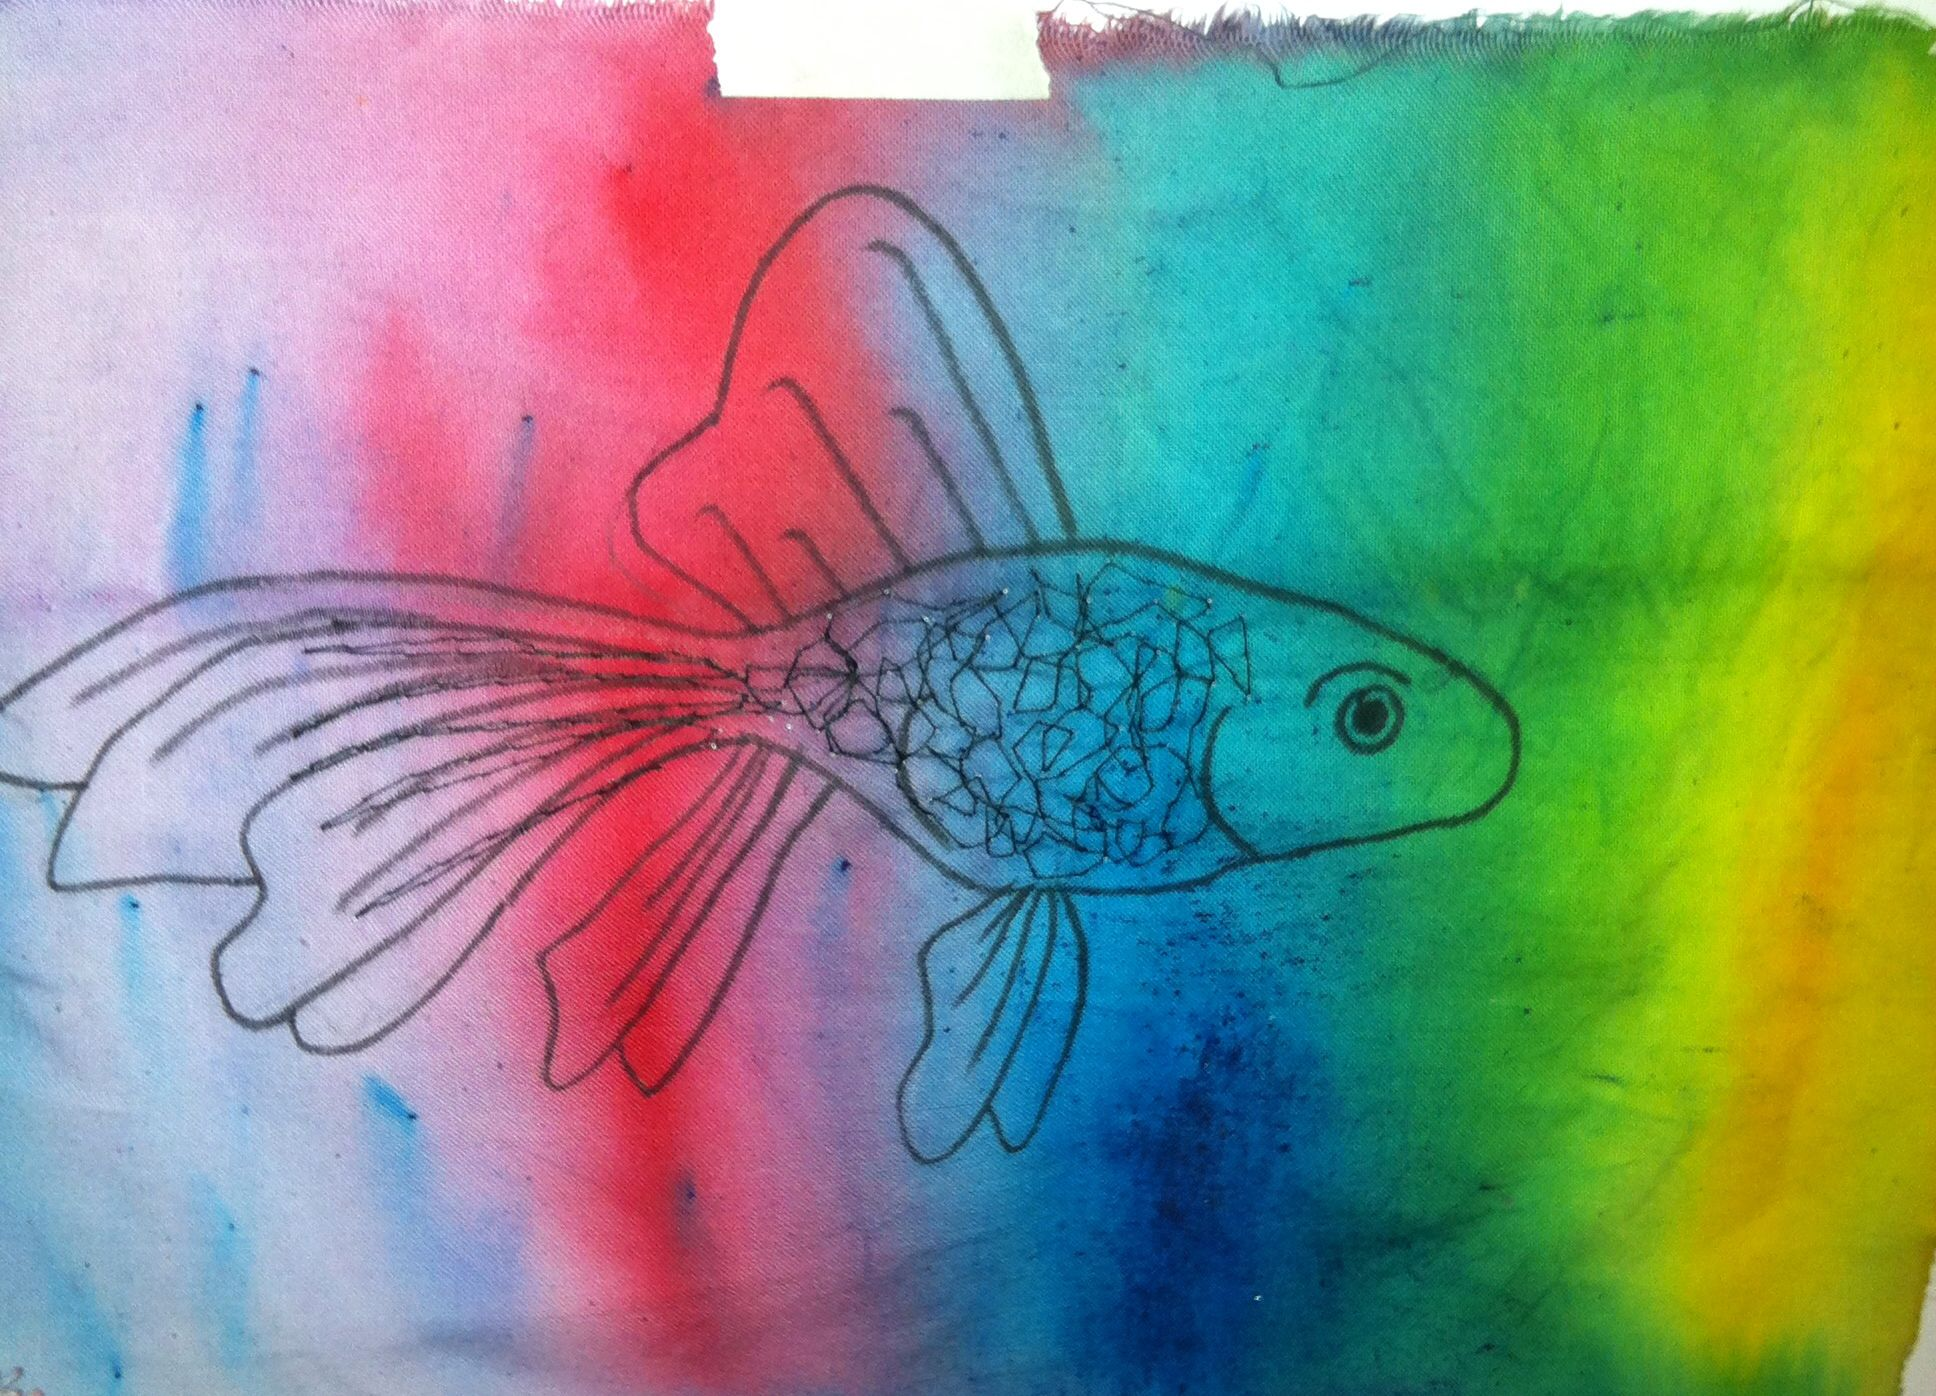 Using paint brusho's dyeing the calico fabric and then drew the fish on top #fish